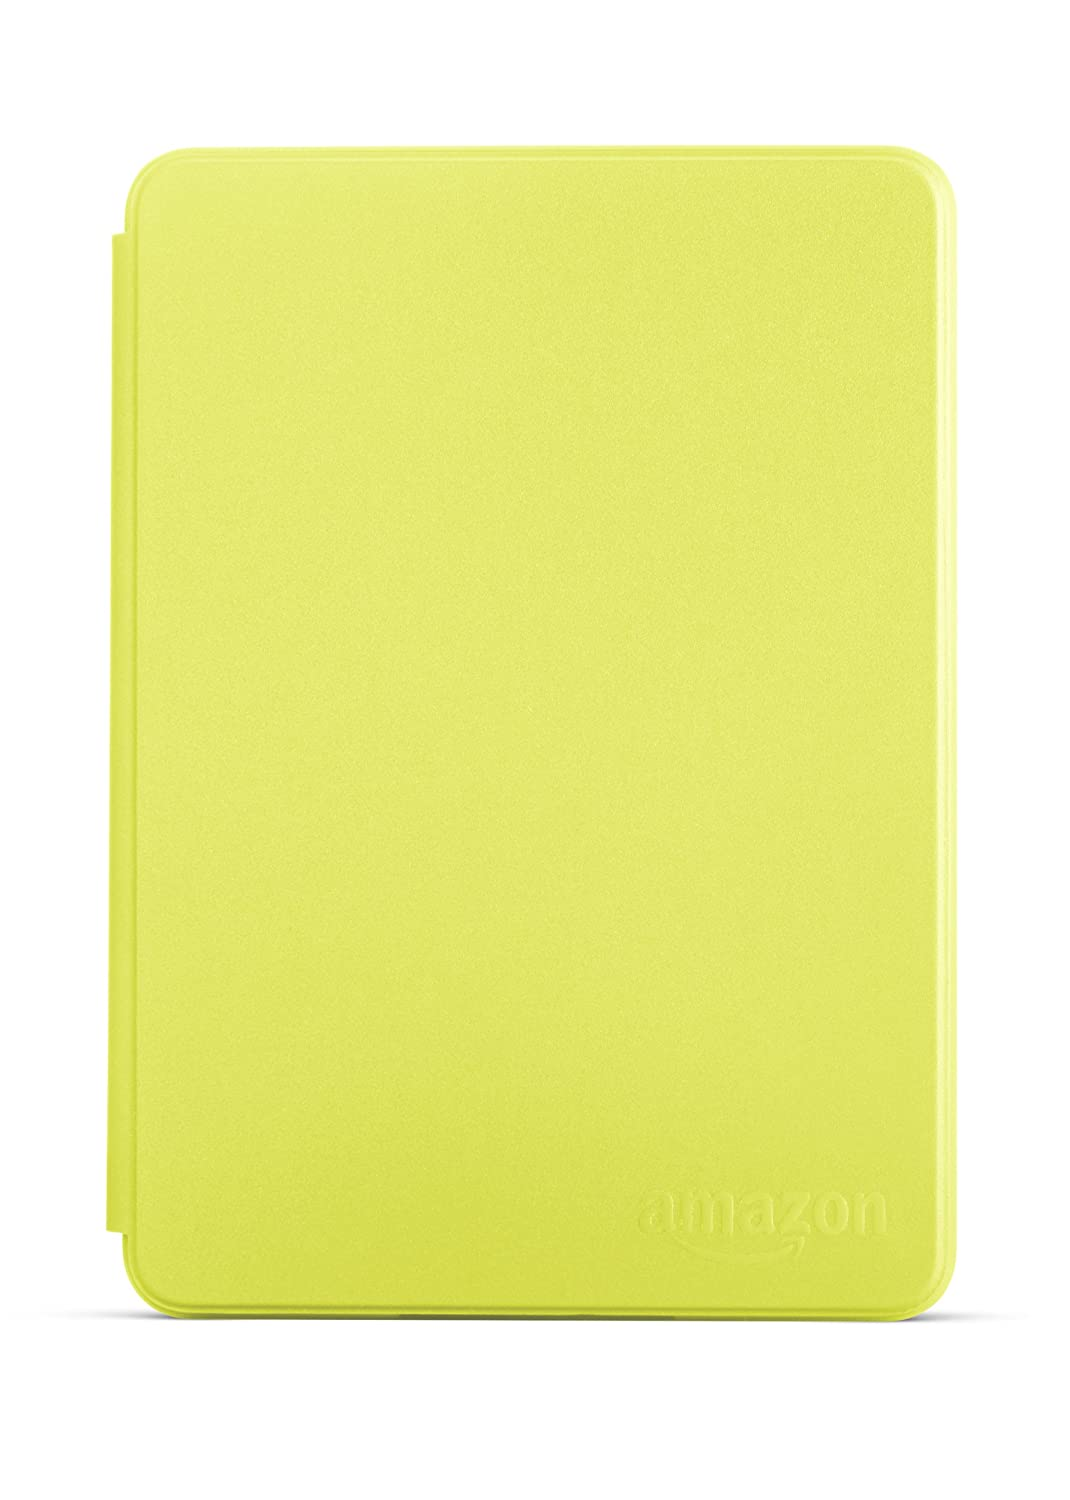 7th Generation will not fit previous generation Kindle devices Protective Cover for Kindle Purple